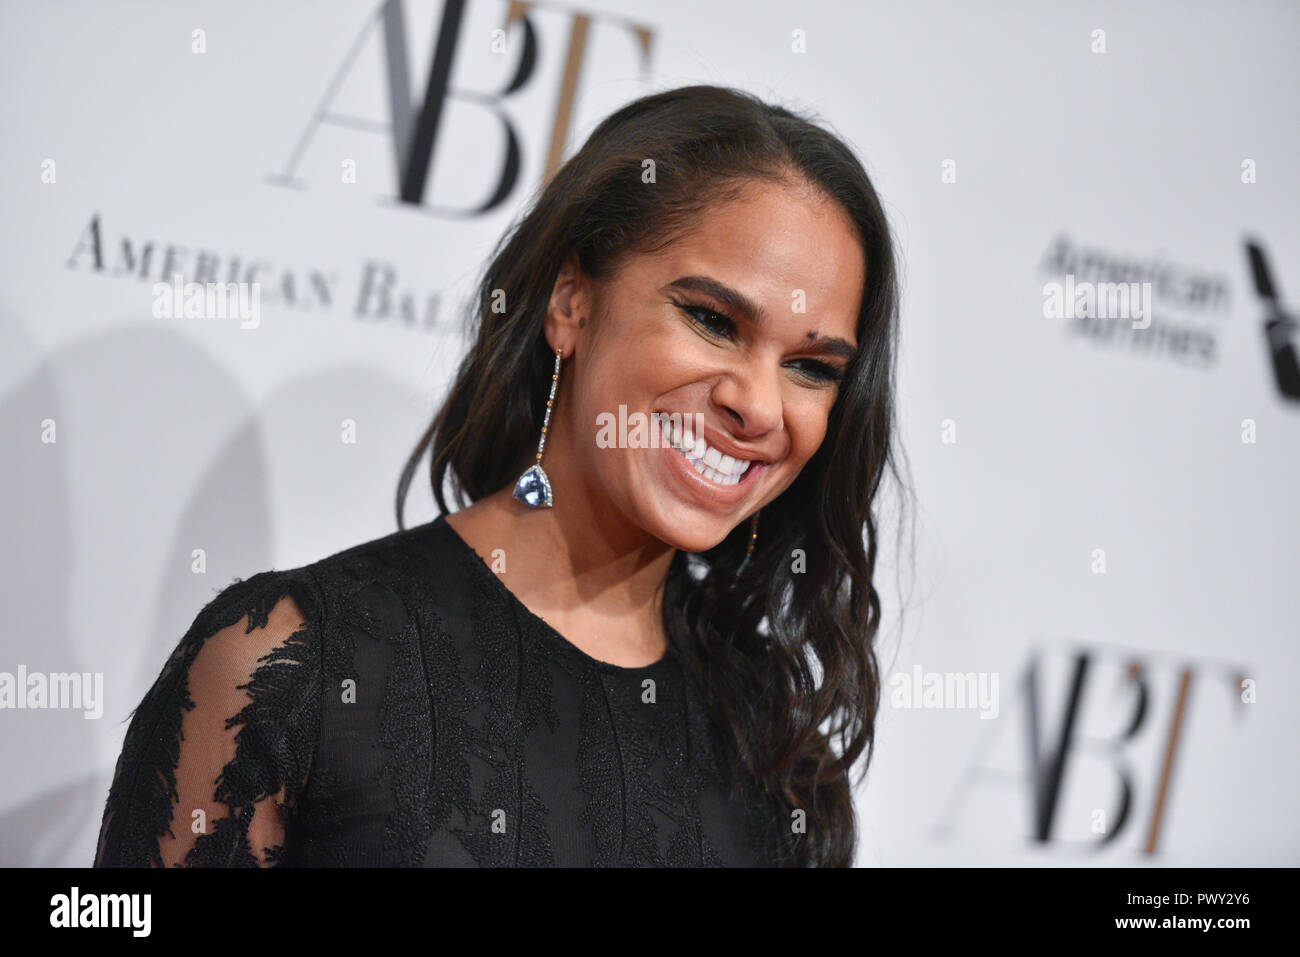 New York, USA. 17th October, 2018. Misty Copeland attends The American Ballet Theatre 2018 Fall Gala at David H. Koch Theater, Lincoln Center on October 17, 2018 in New York City. Credit: Erik Pendzich/Alamy Live News - Stock Image